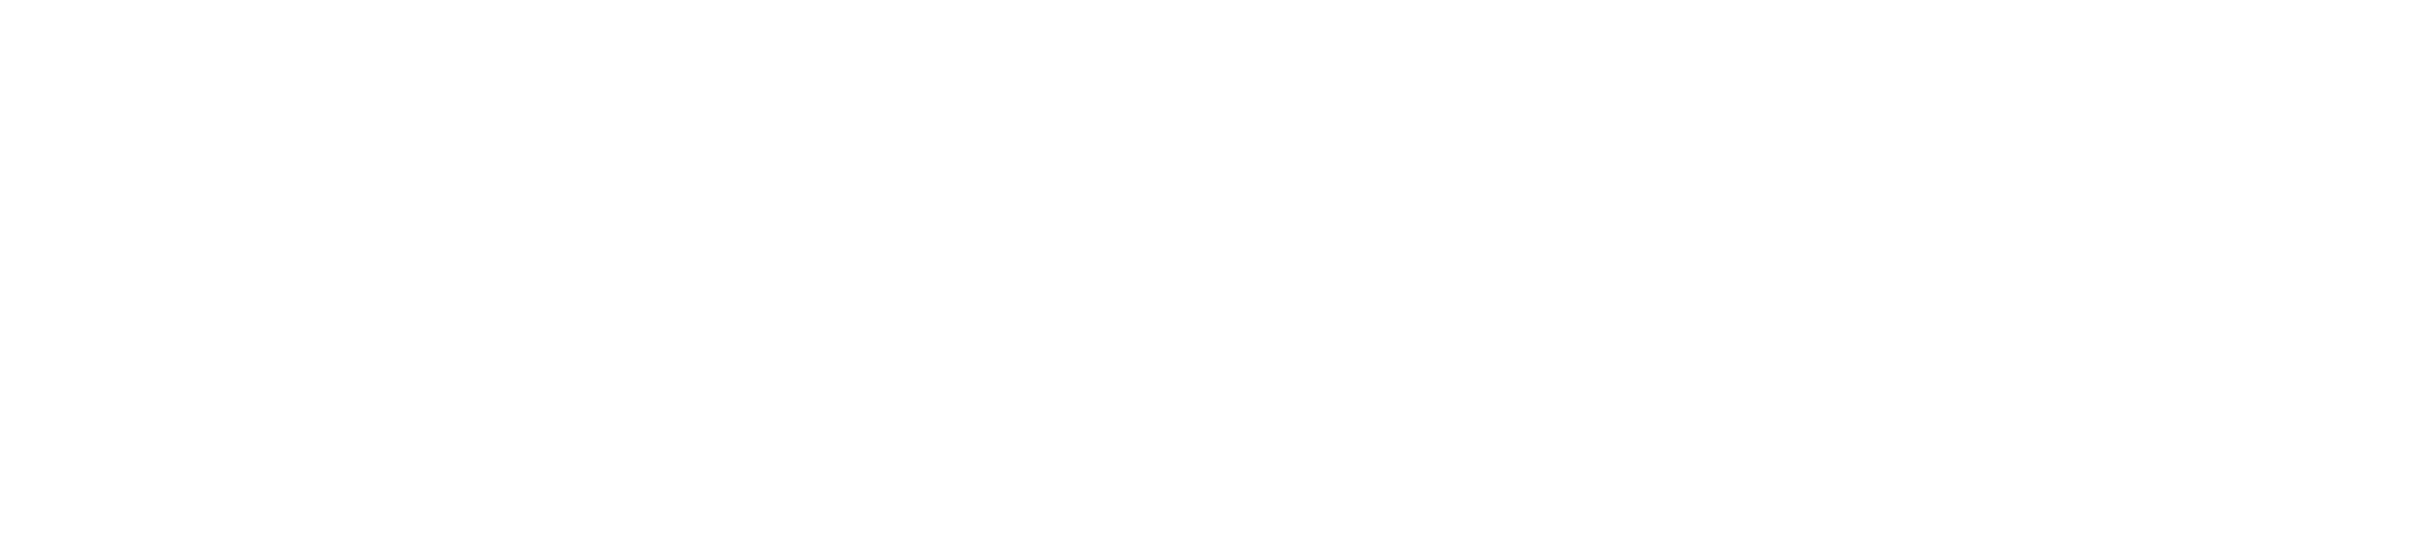 Life Strategy Financial-Planning Today for Your Tomorrow Houston, TX Life Strategy Financial